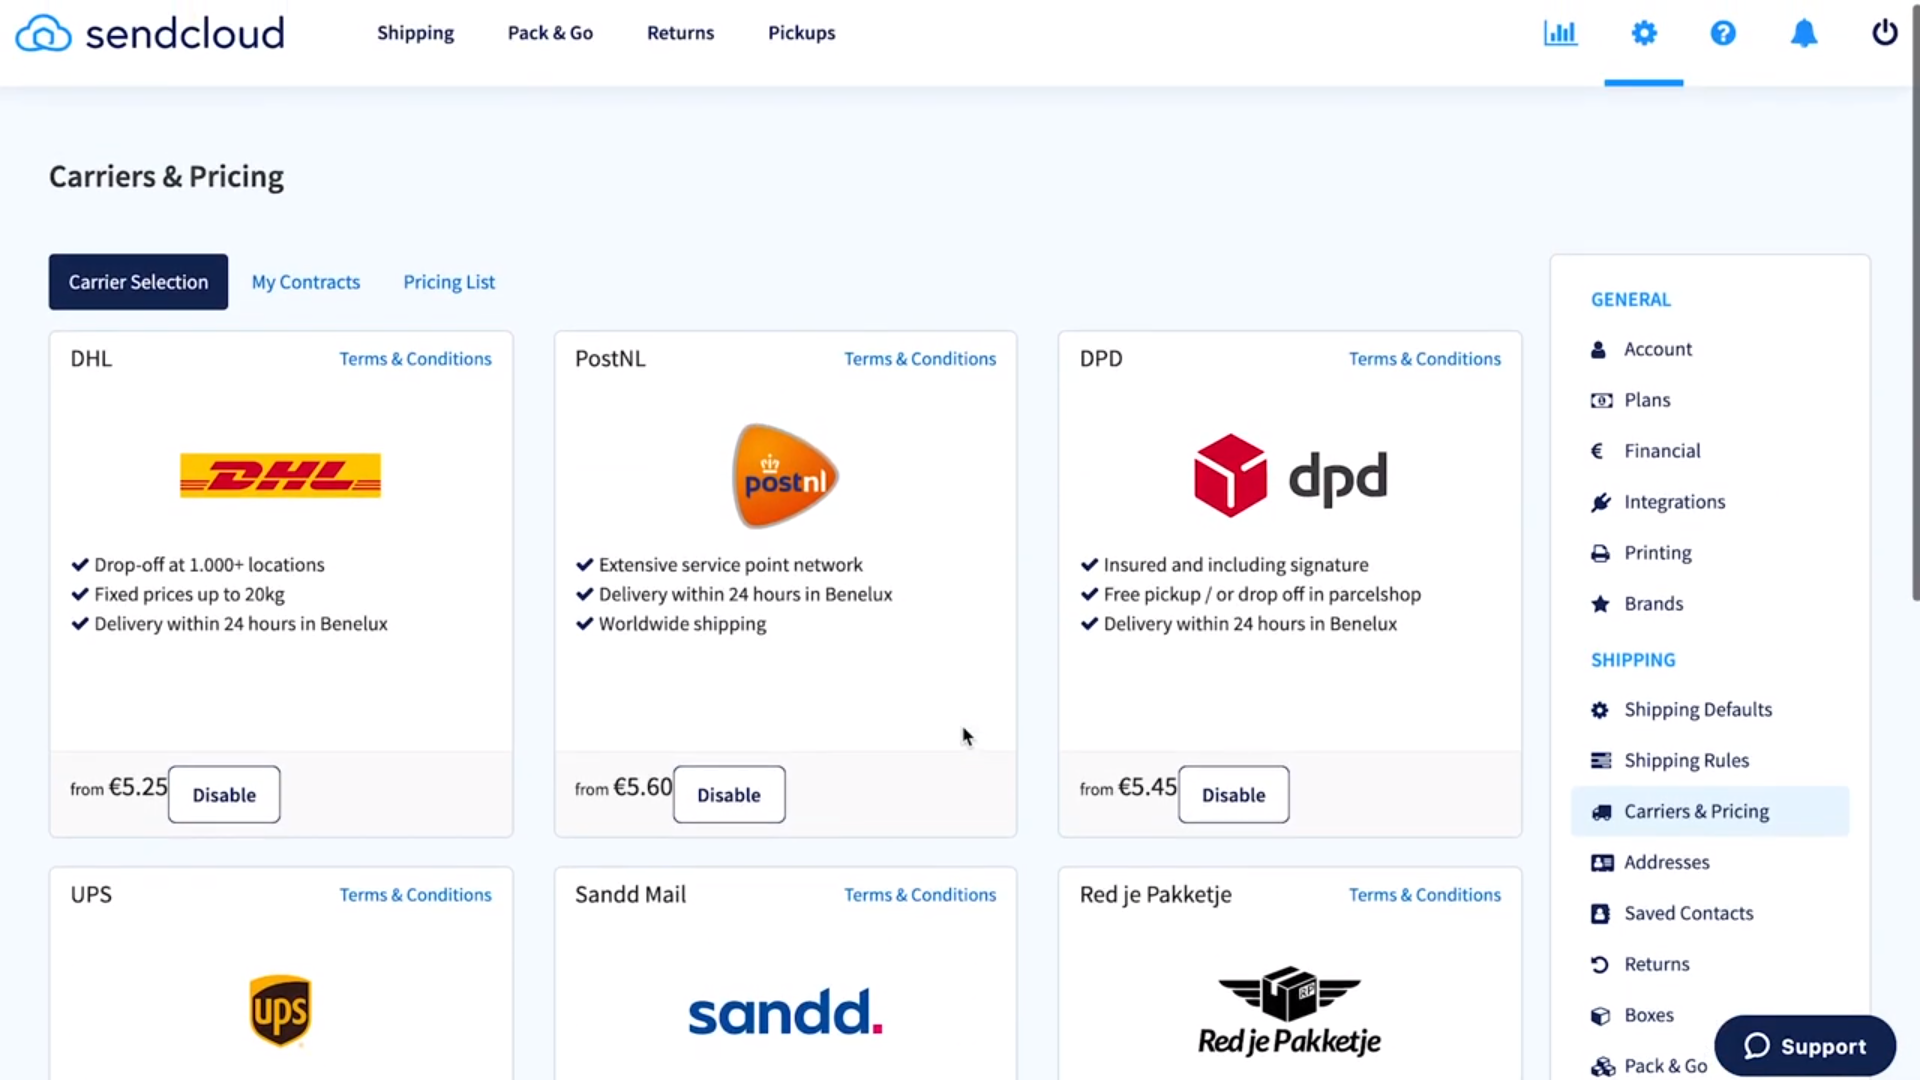 Sendcloud carriers and pricing